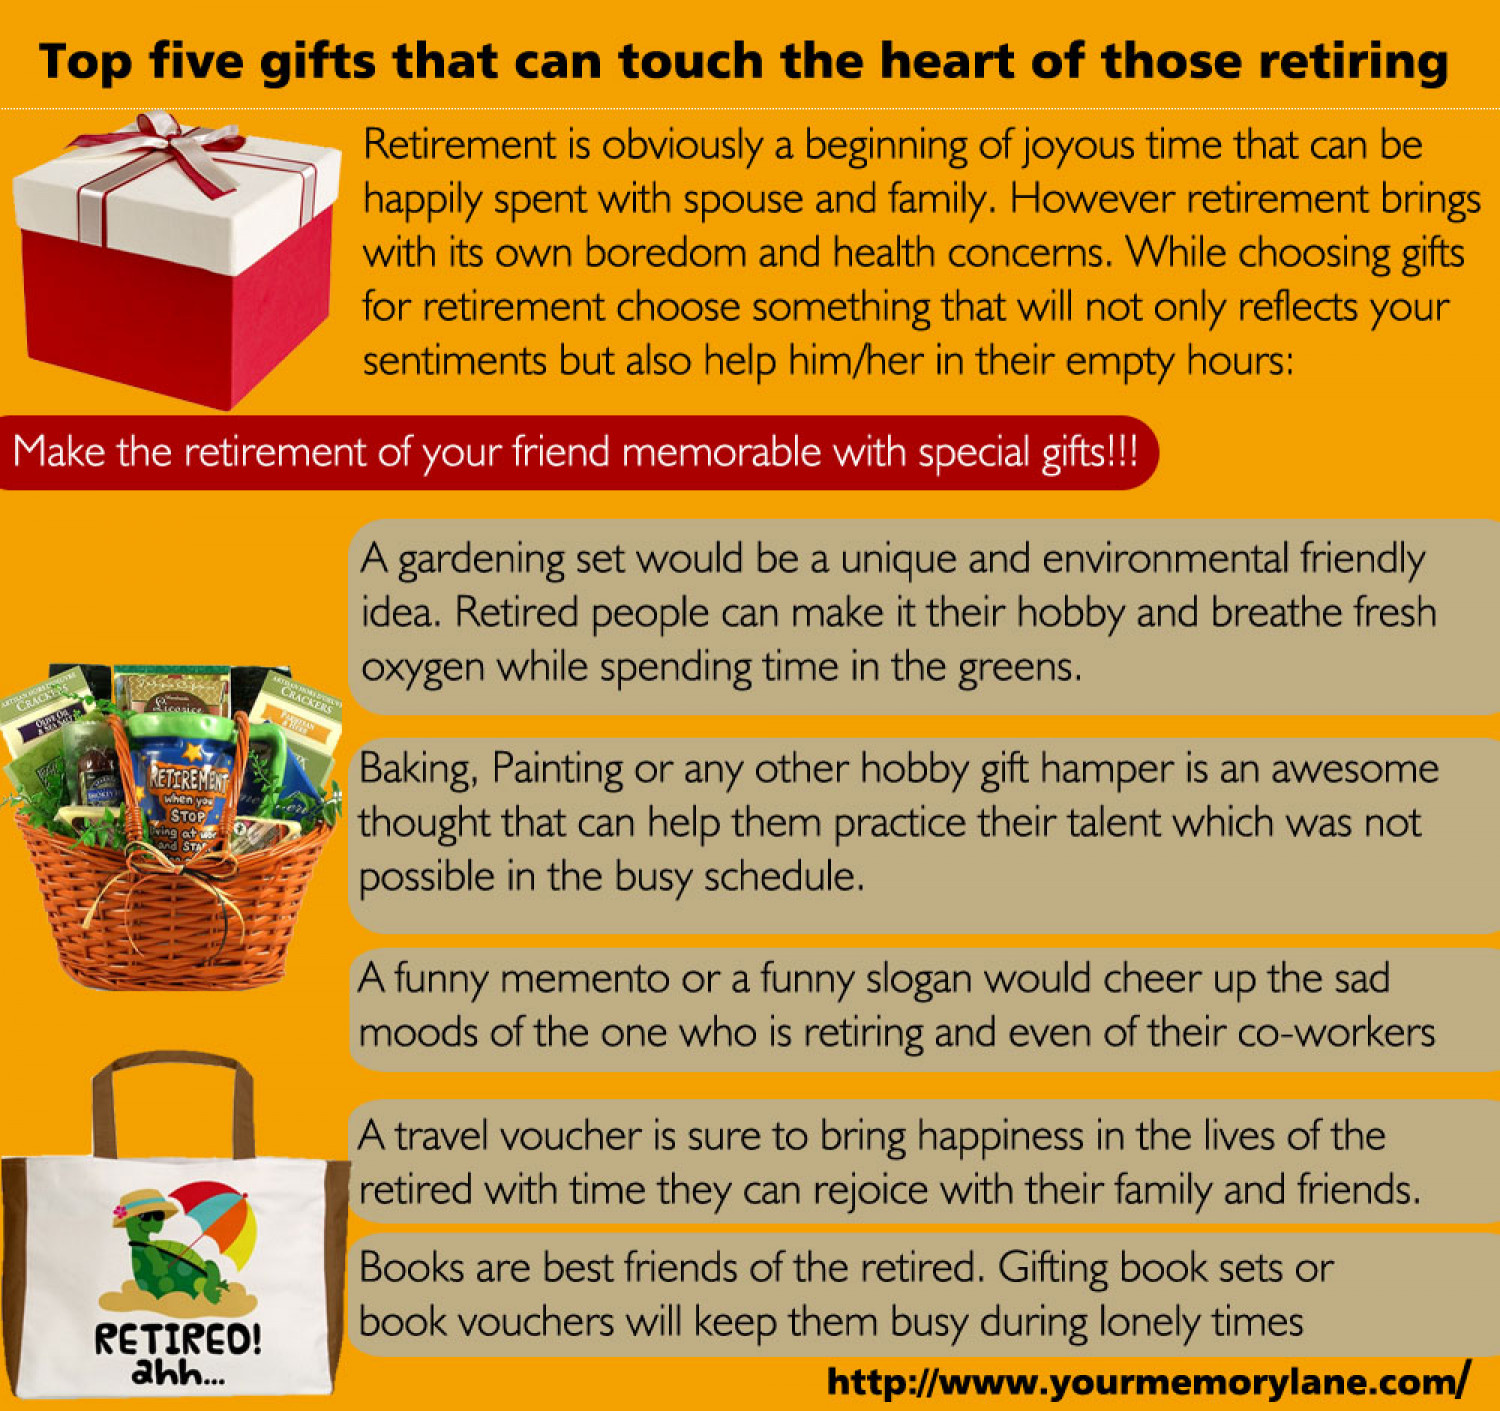 Different Wedding Anniversary Gifts Year : Unique Wedding Anniversary Gifts for First Year by Year Infographic